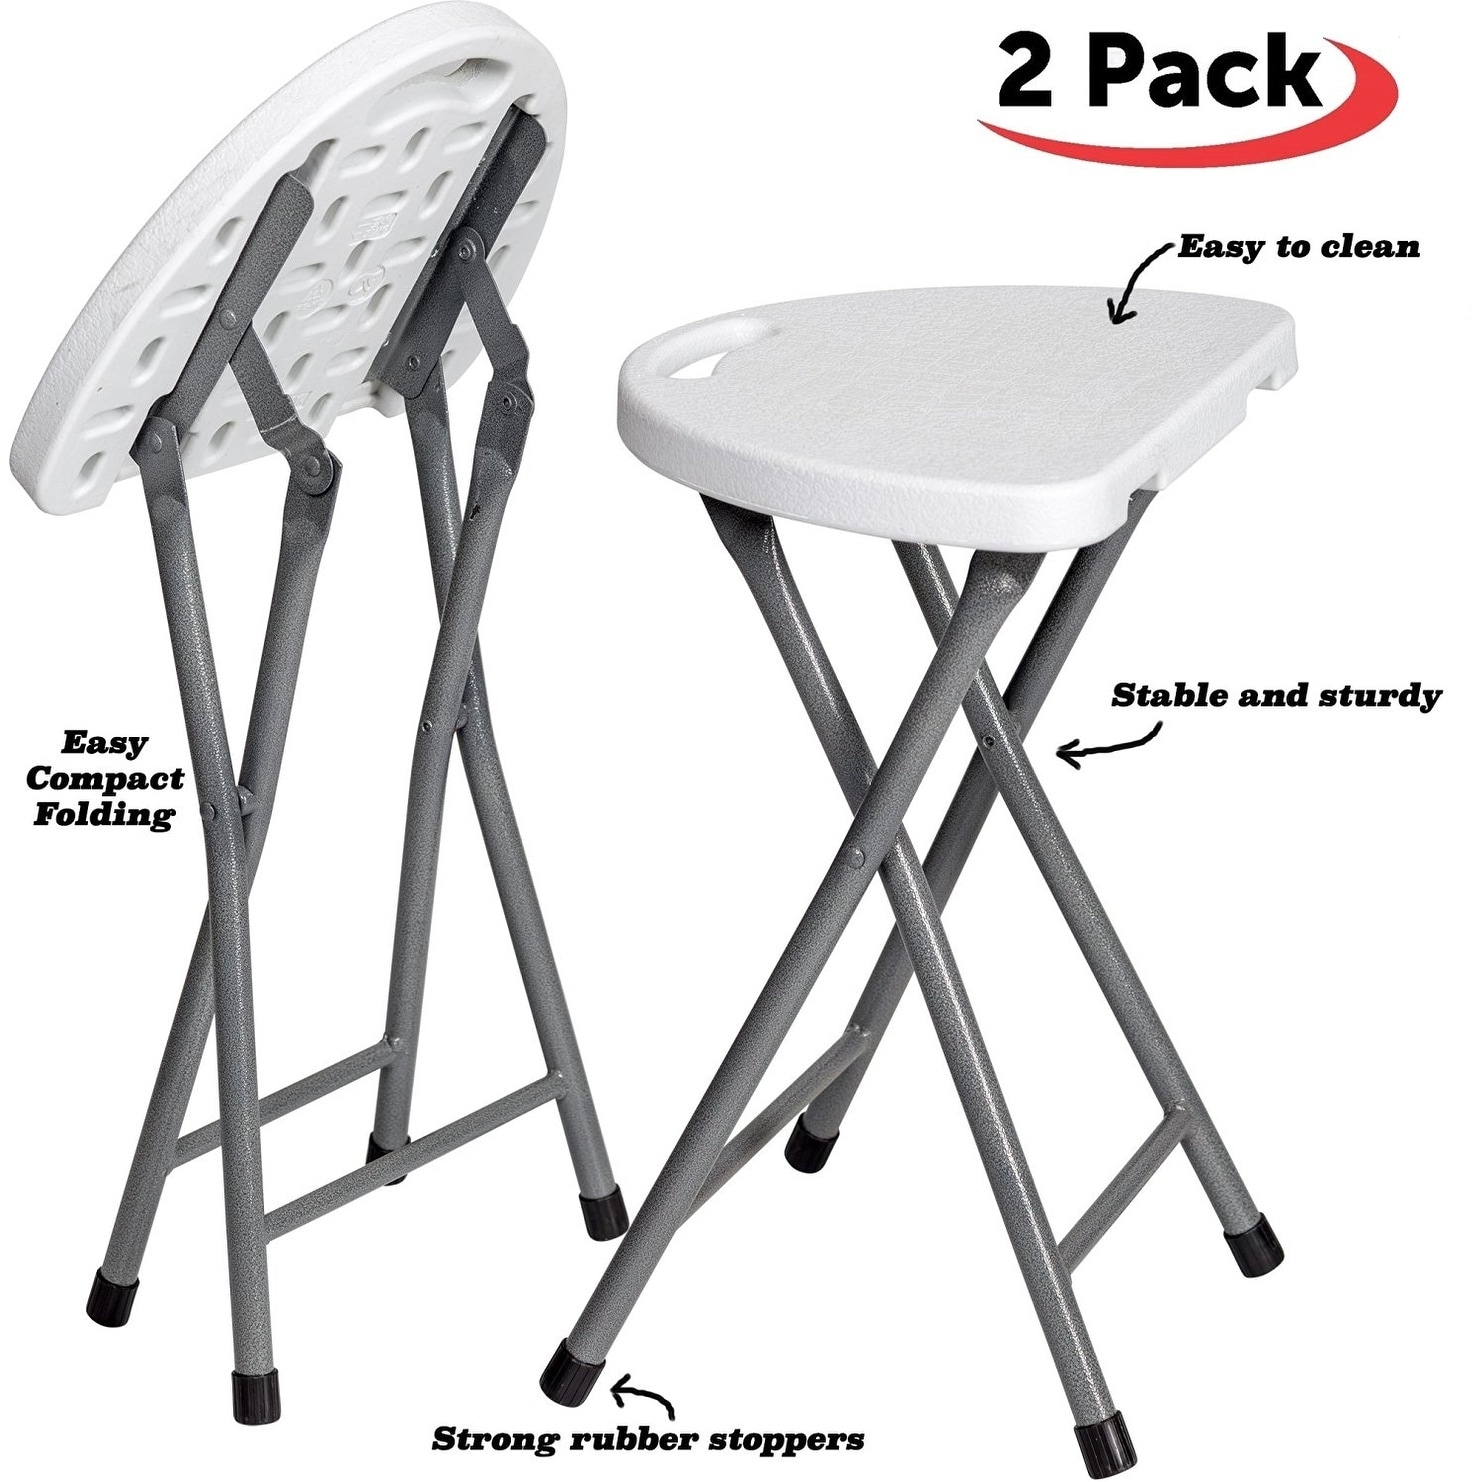 Portable Stool Folding Stool Set Of 2 Portable Plastic Chair With Durable Steel Frame Legs Weather Resistant For Indoor Outdoor Use White